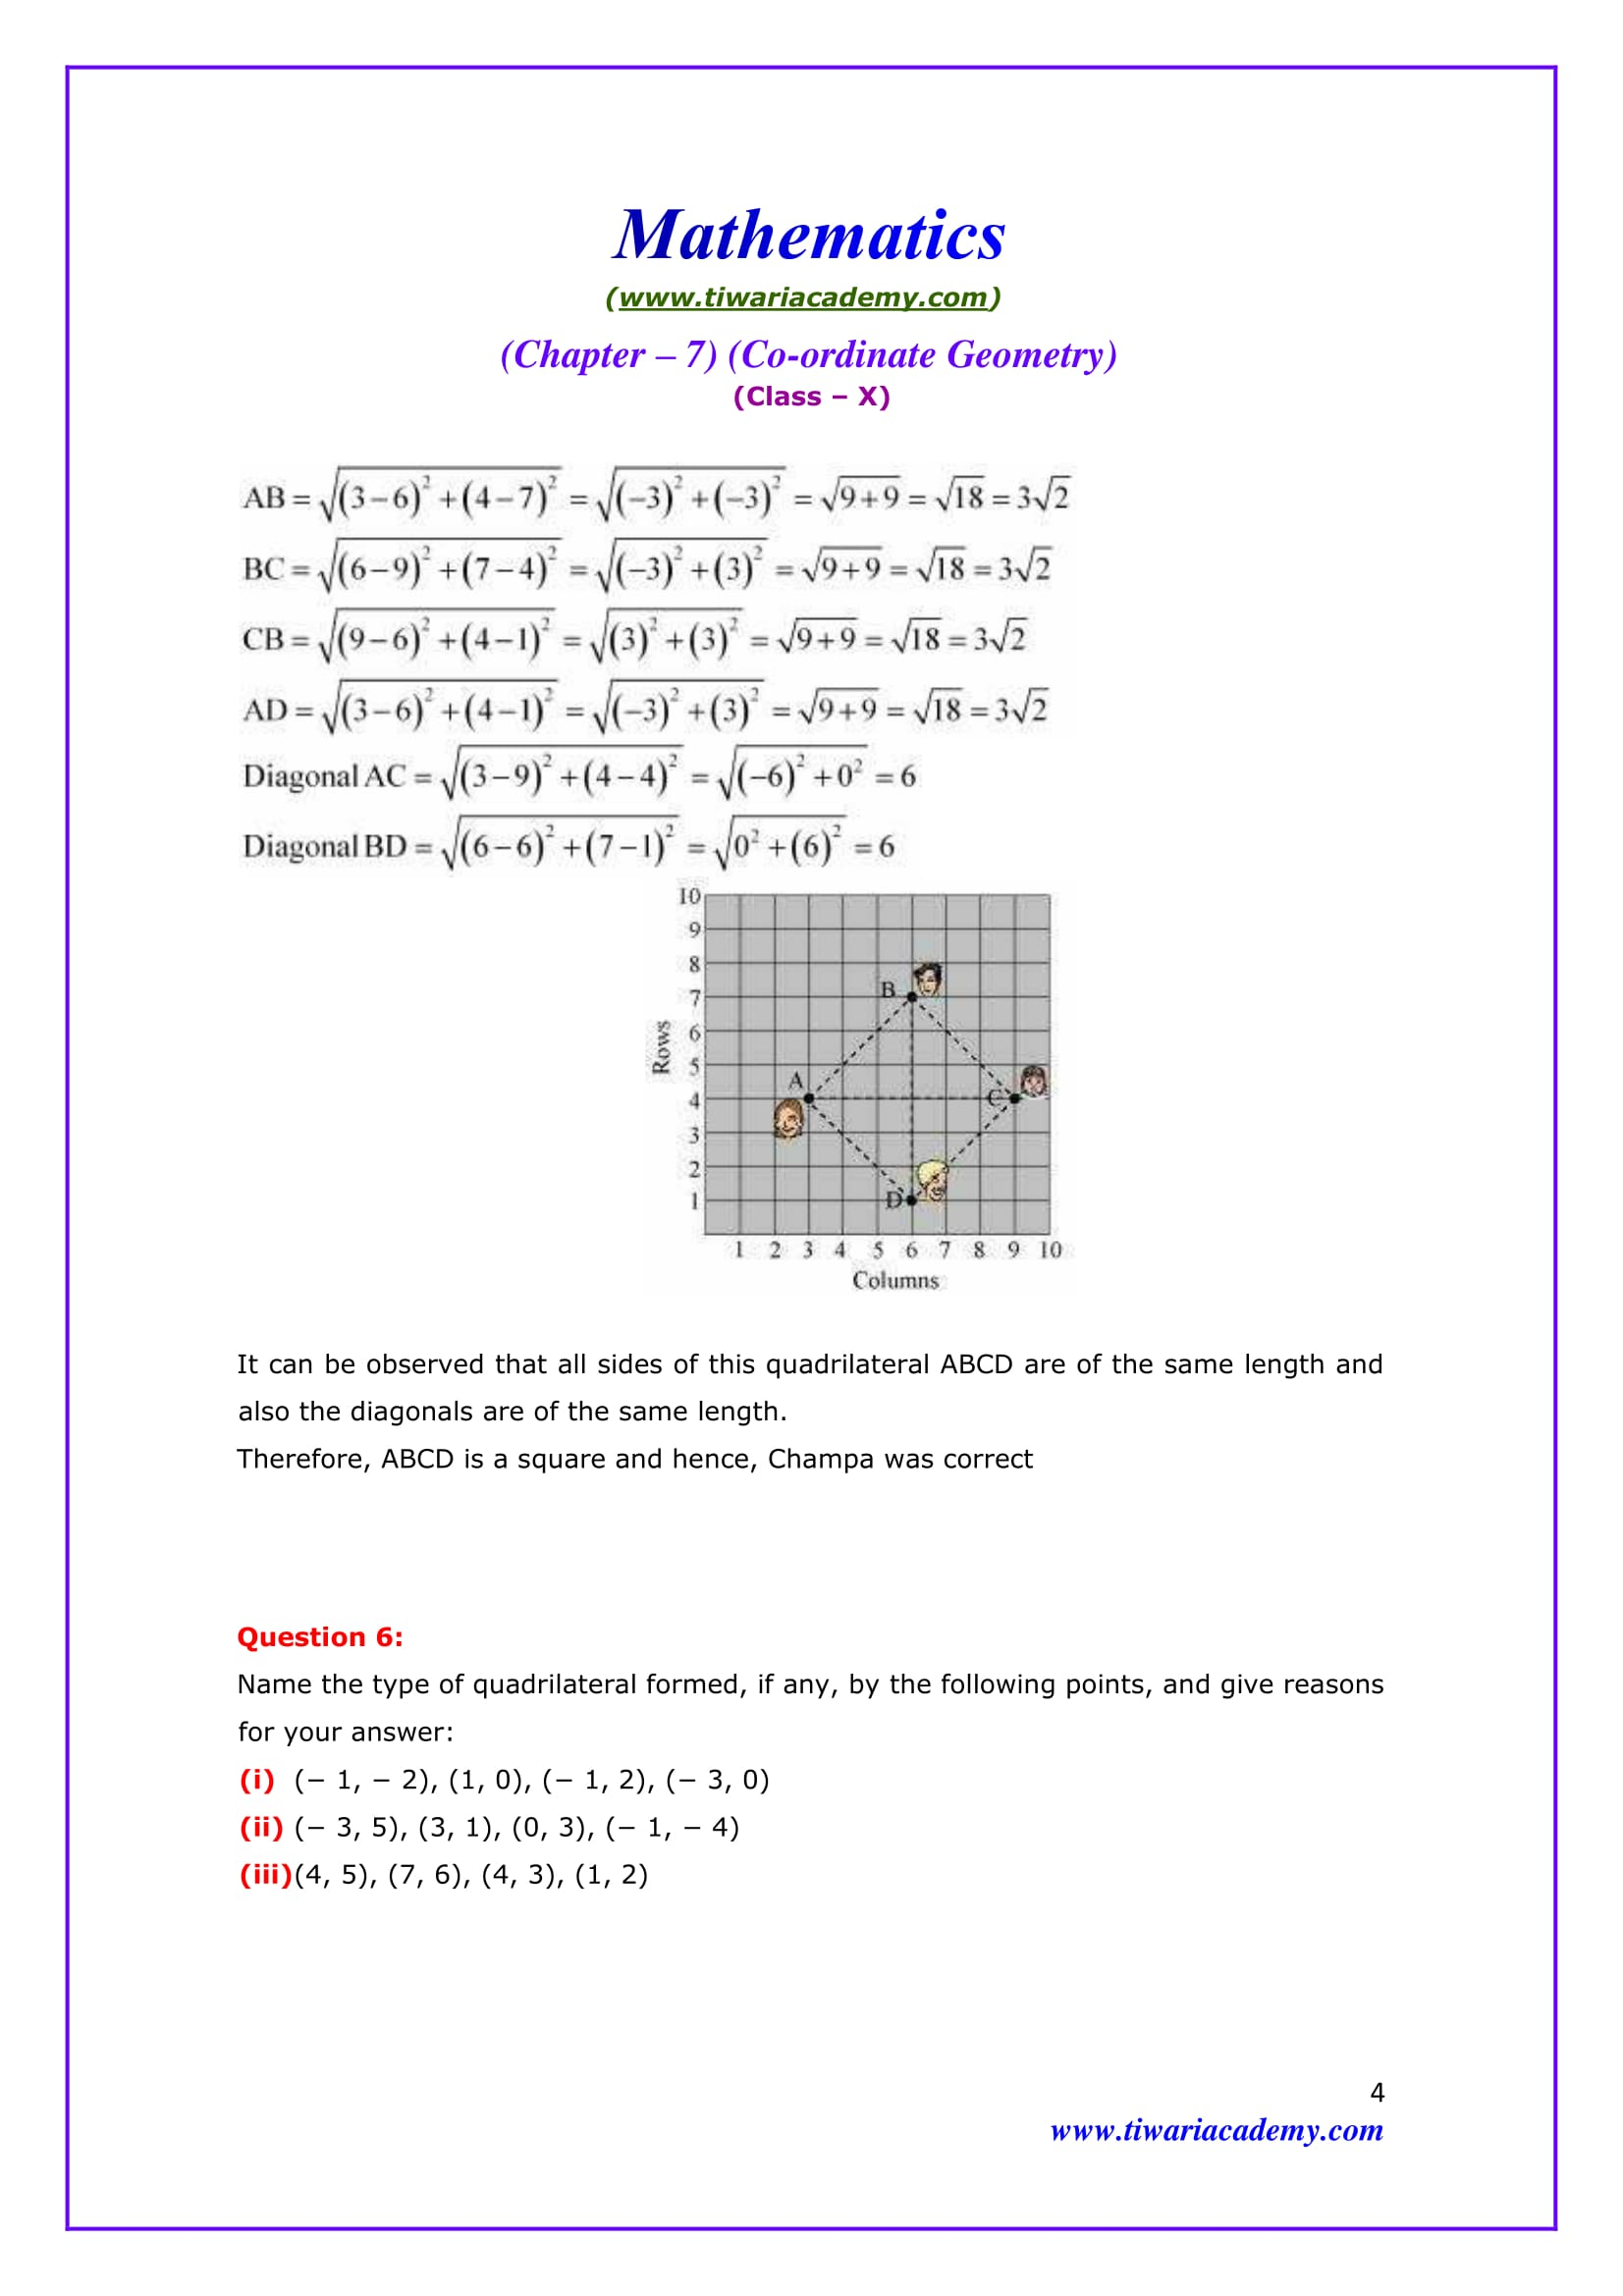 NCERT Solutions for Class 10 Maths Chapter 7 Exercise 7.1 Question 6